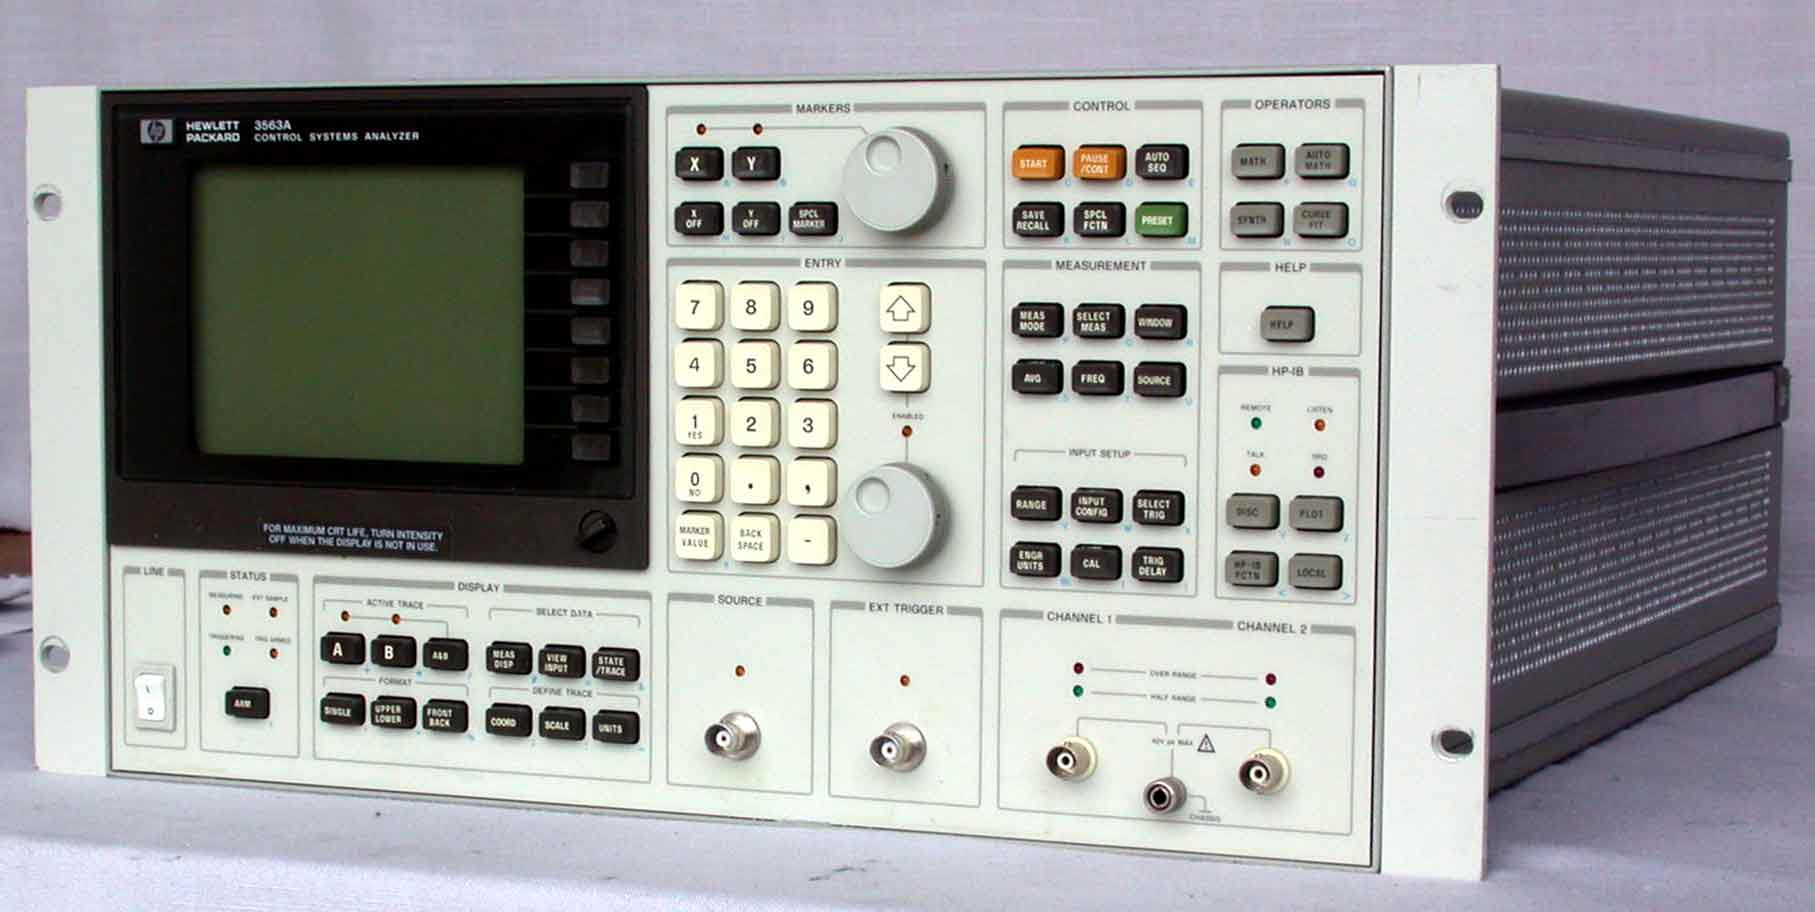 Agilent 3563A Control Systems Analyzer, Fft & Ttl, 64 ?Hz To 100 Khz, 150